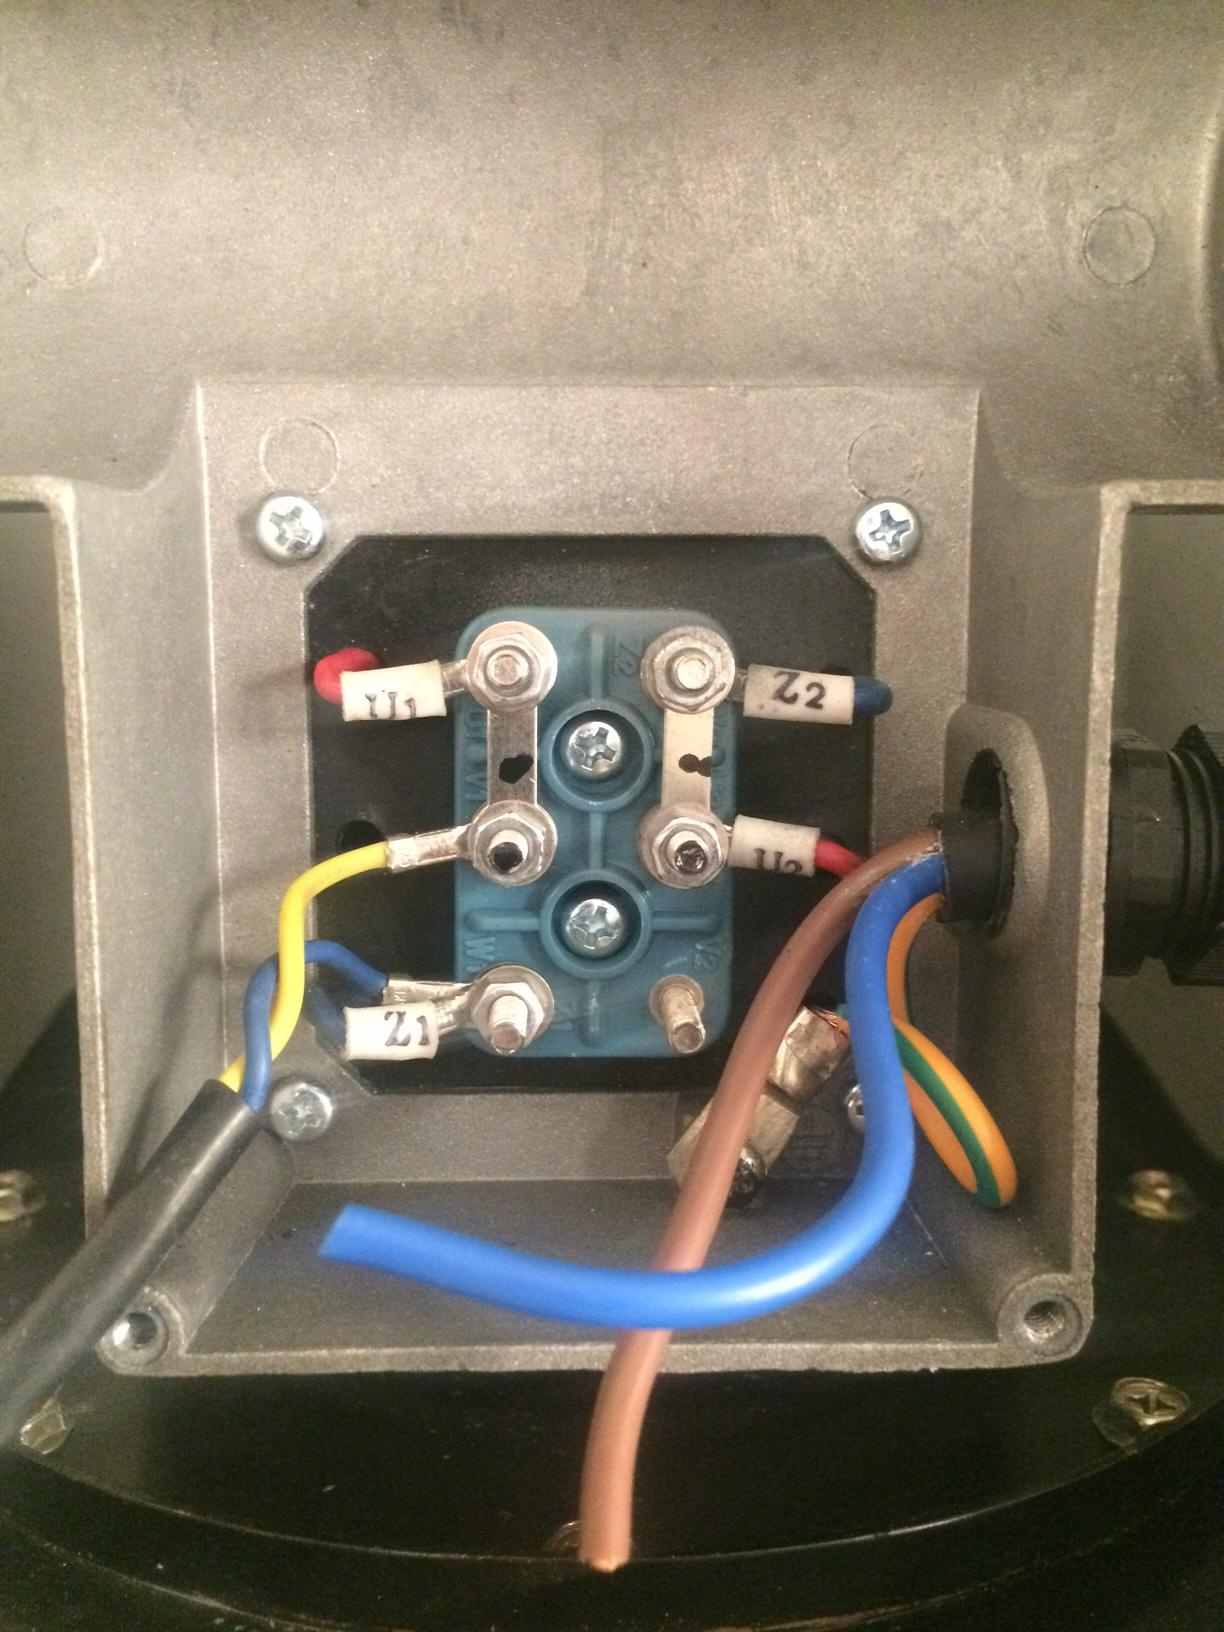 Wiring - How To Wire Up A Single-Phase Electric Blower Motor - Single Phase Motor Wiring Diagram